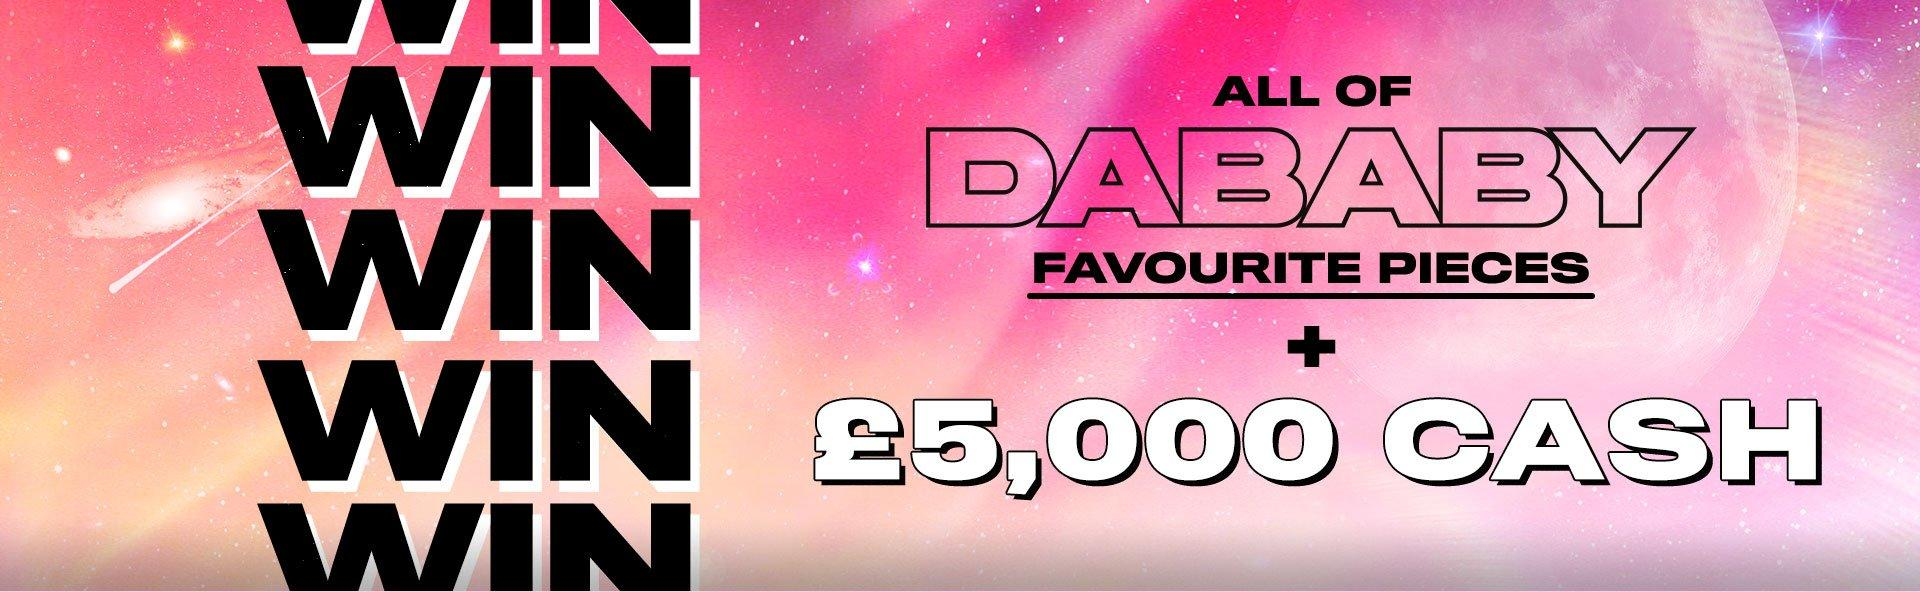 Win all of DaBaby favourite pieces plus £5000 cash